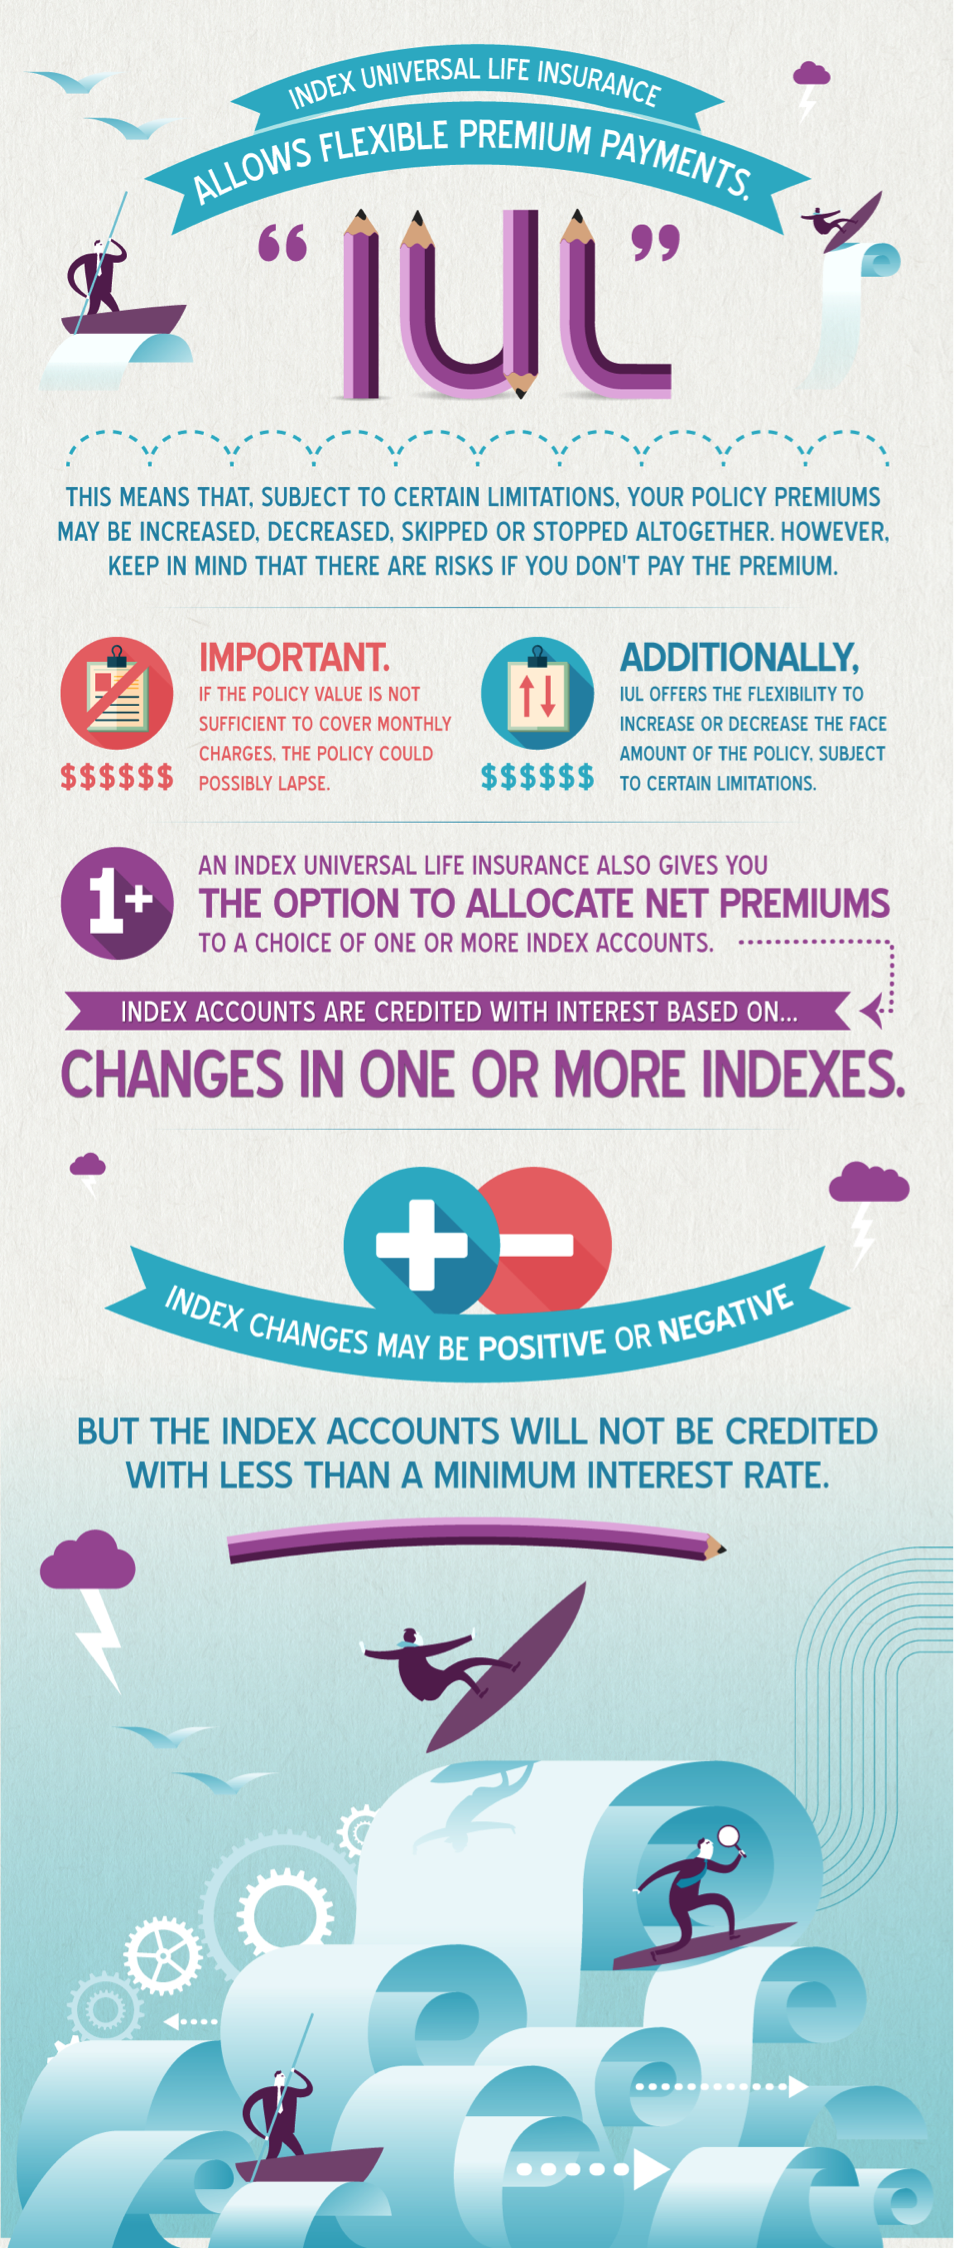 Index Universal Life Insurance Infographic Universal Life